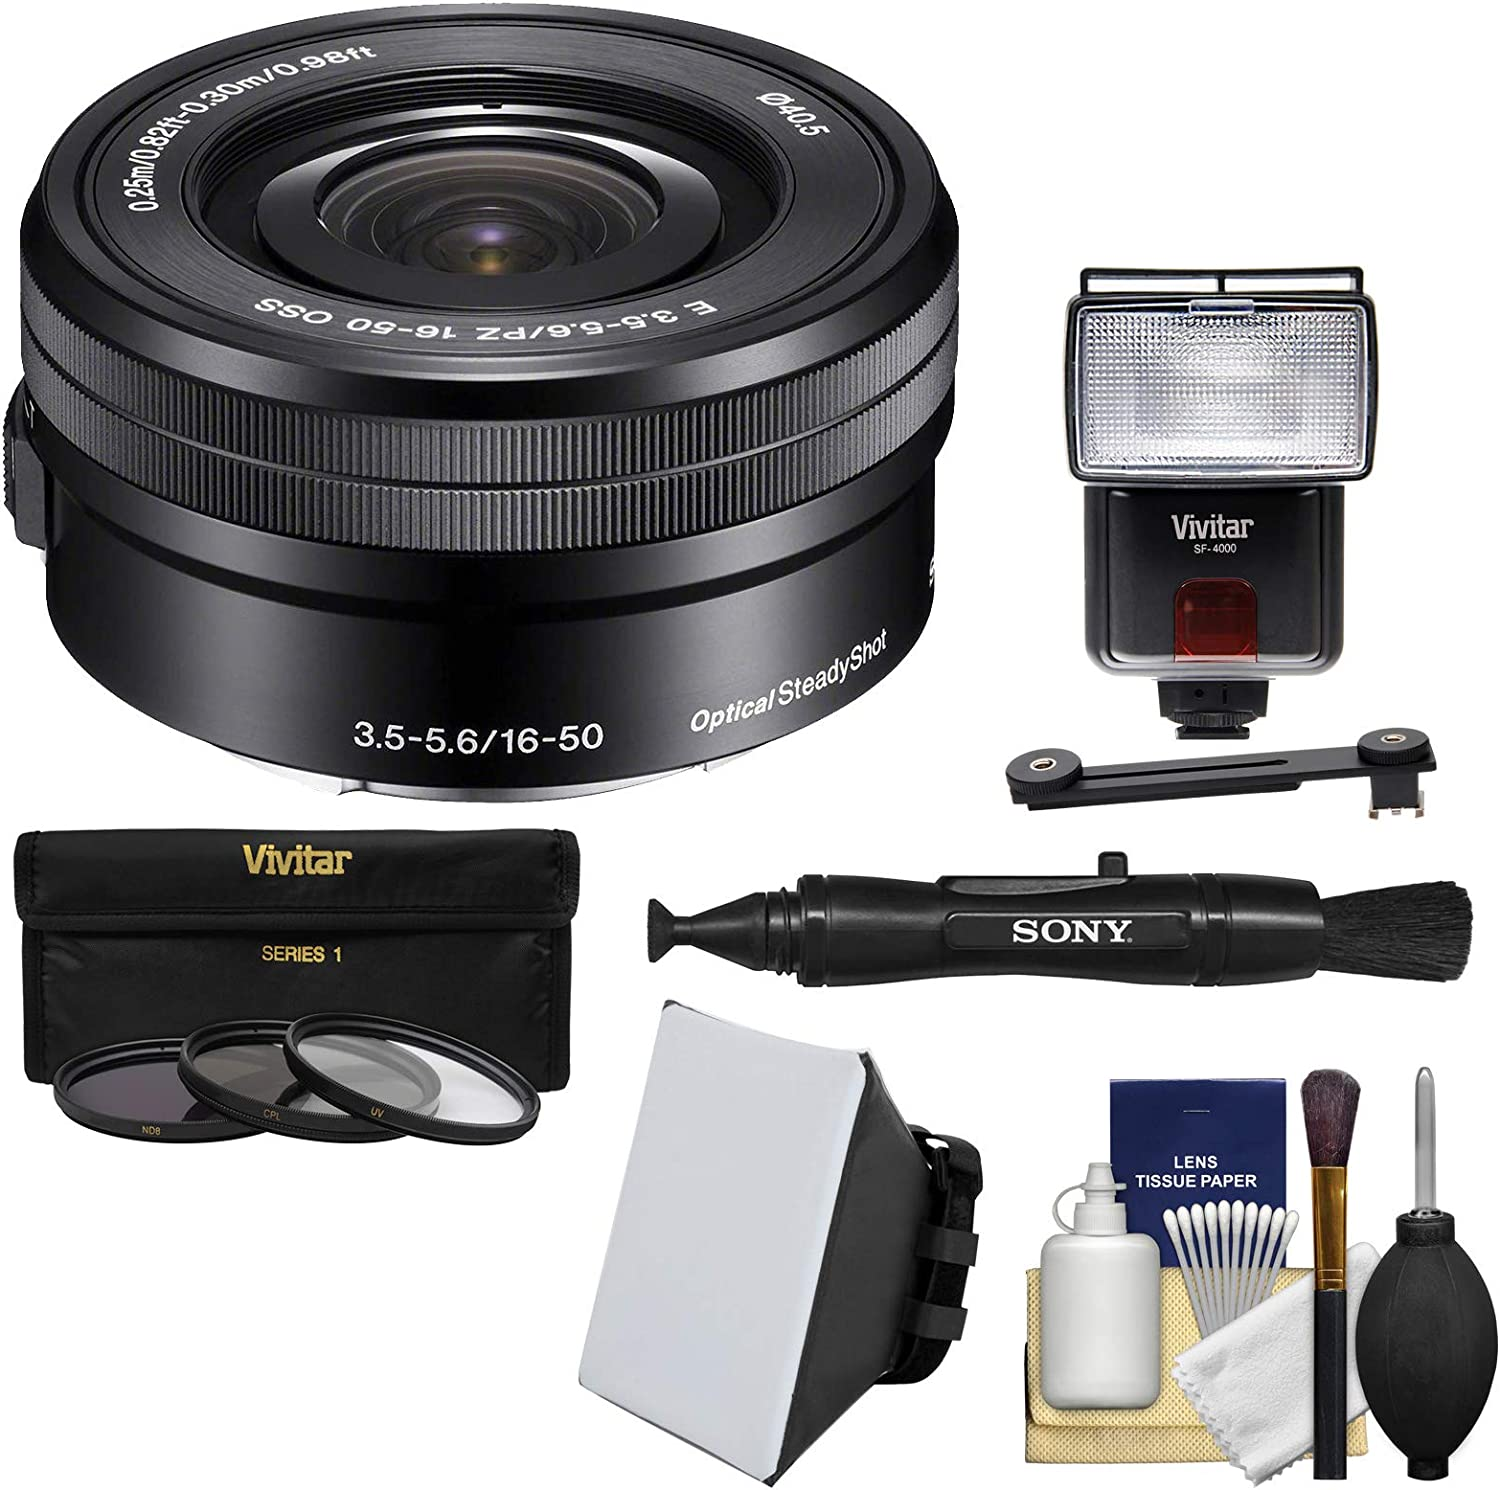 NEX-6 Camera with Sony 16-50mm E-Mount Lens NEX-5TL A6000 and 4 PC Close Up Filter Set for Sony Alpha A5000 A6500 7 Piece 40.5mm Filter Set Includes 3 PC Filter Kit UV-CPL-FLD A5100 A6300